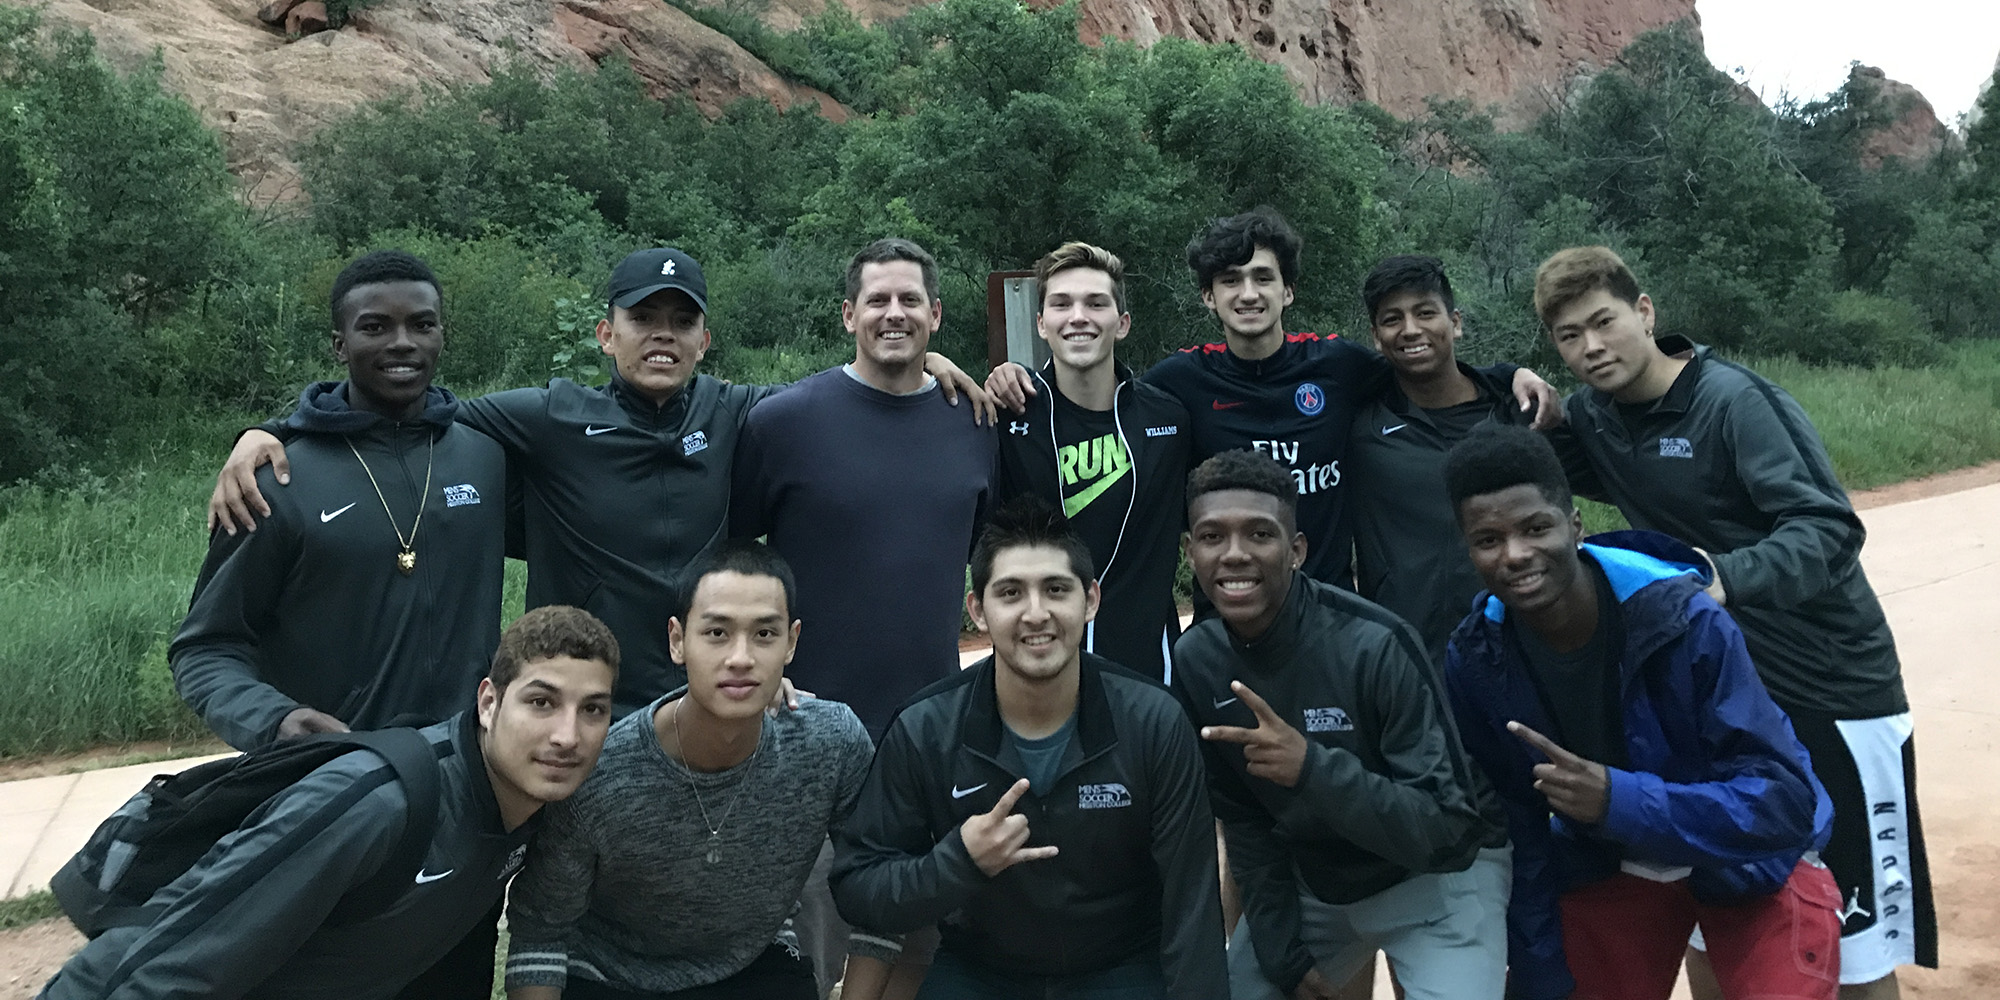 Team photo with former Lark soccer player Mark Lakin, class of '93 (back row, third from left), at Garden of the Gods